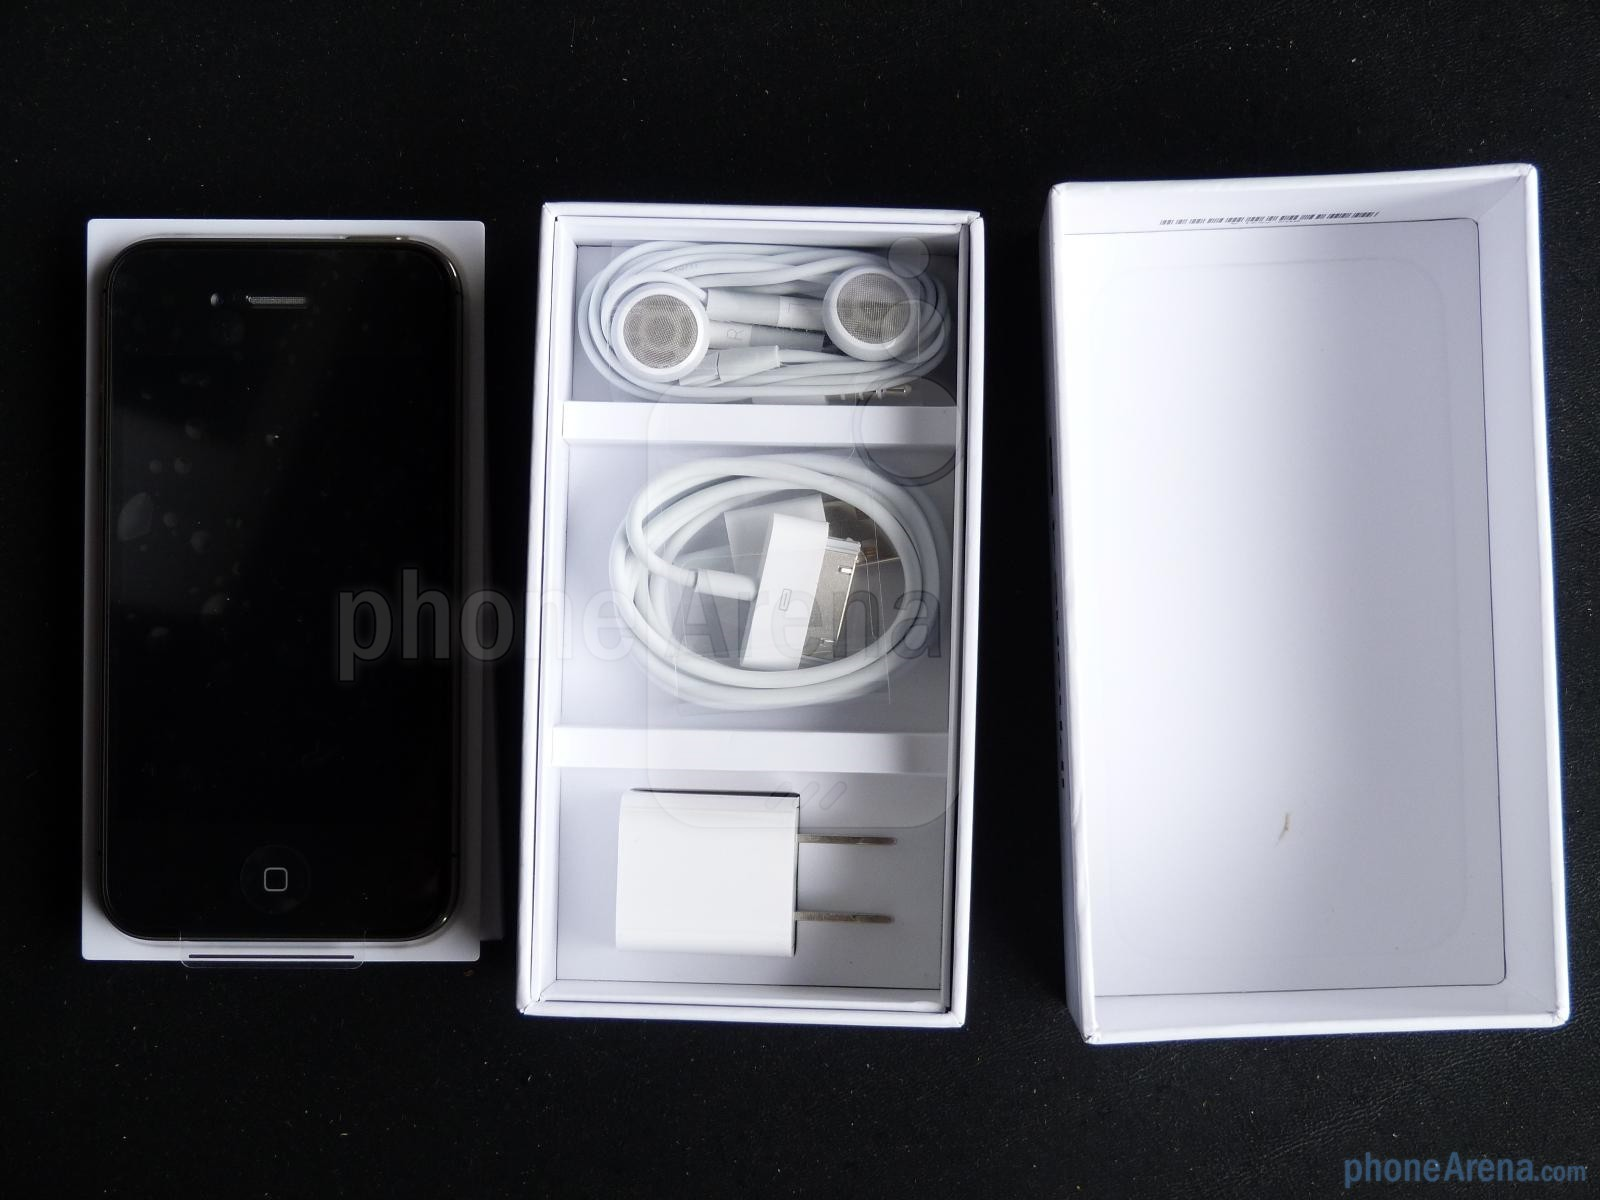 iPhone 4s 16GB 03